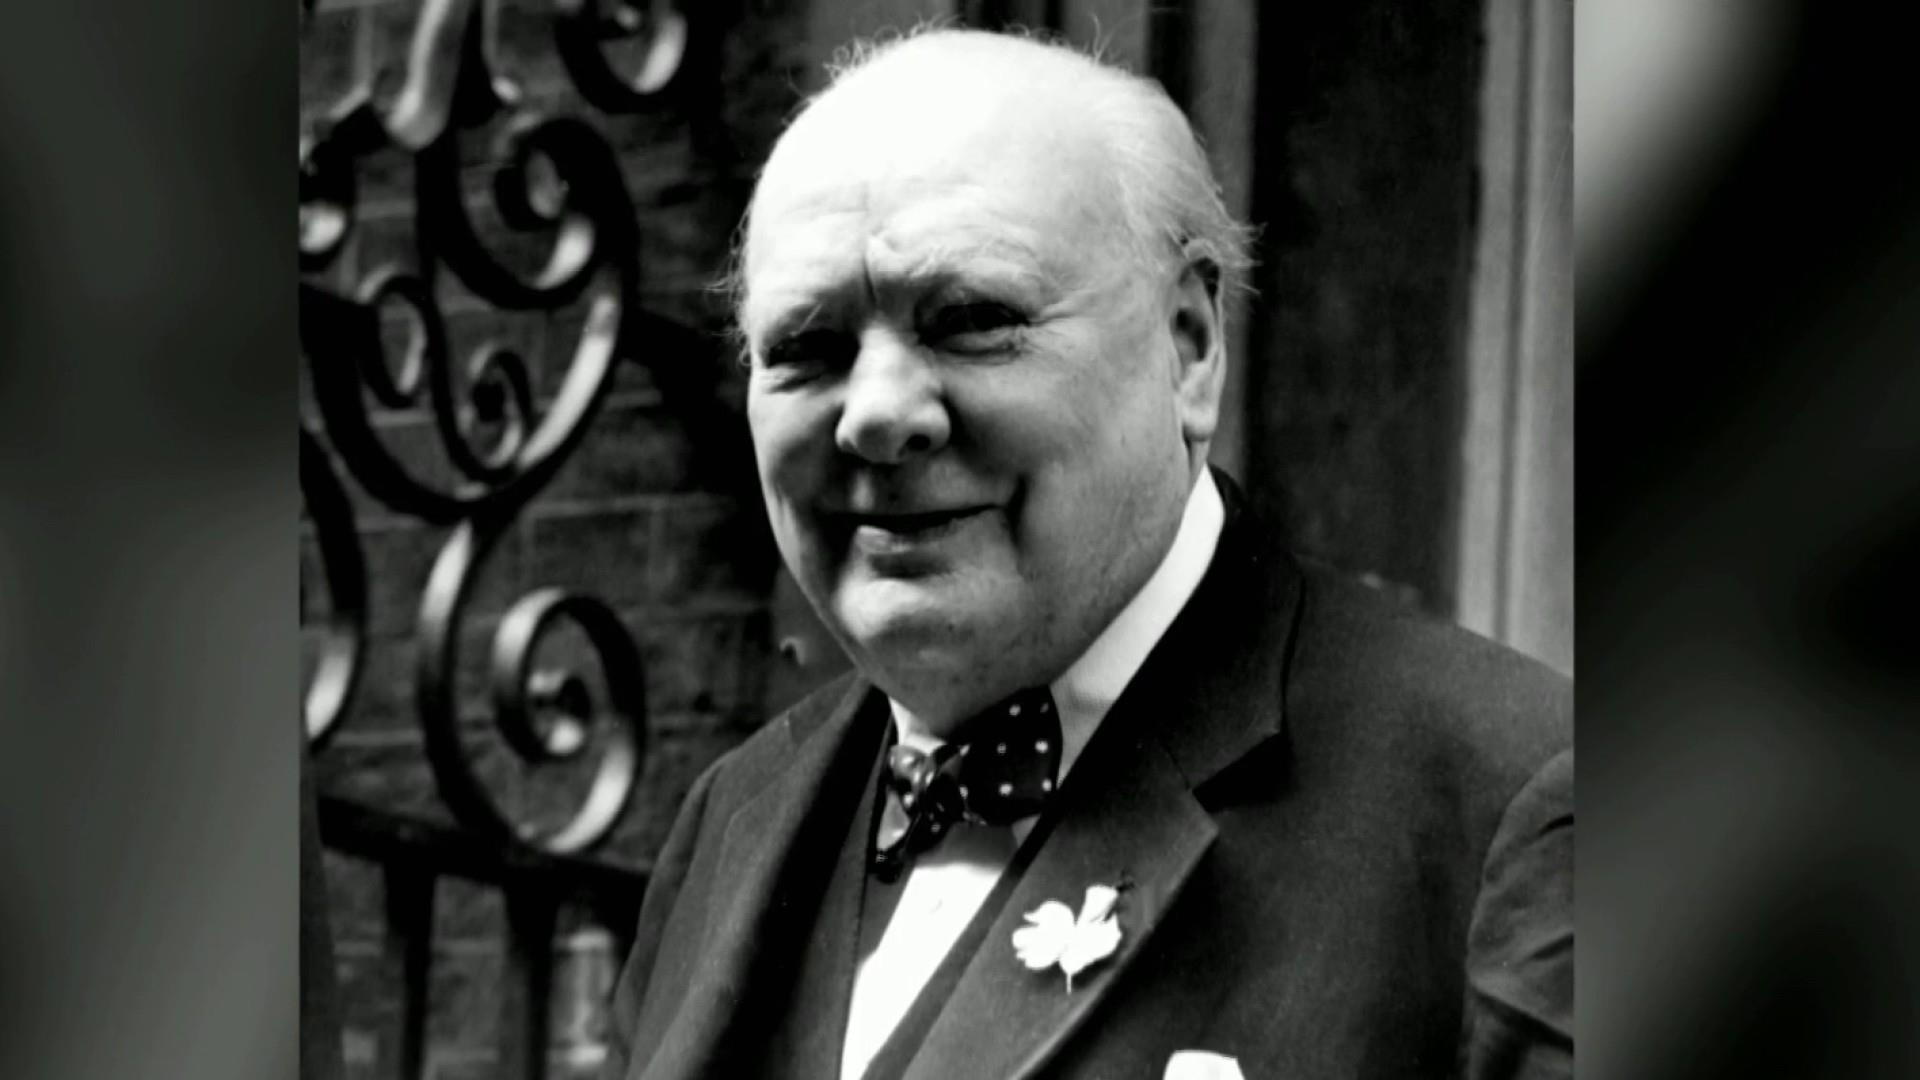 What we can learn from Winston Churchill now